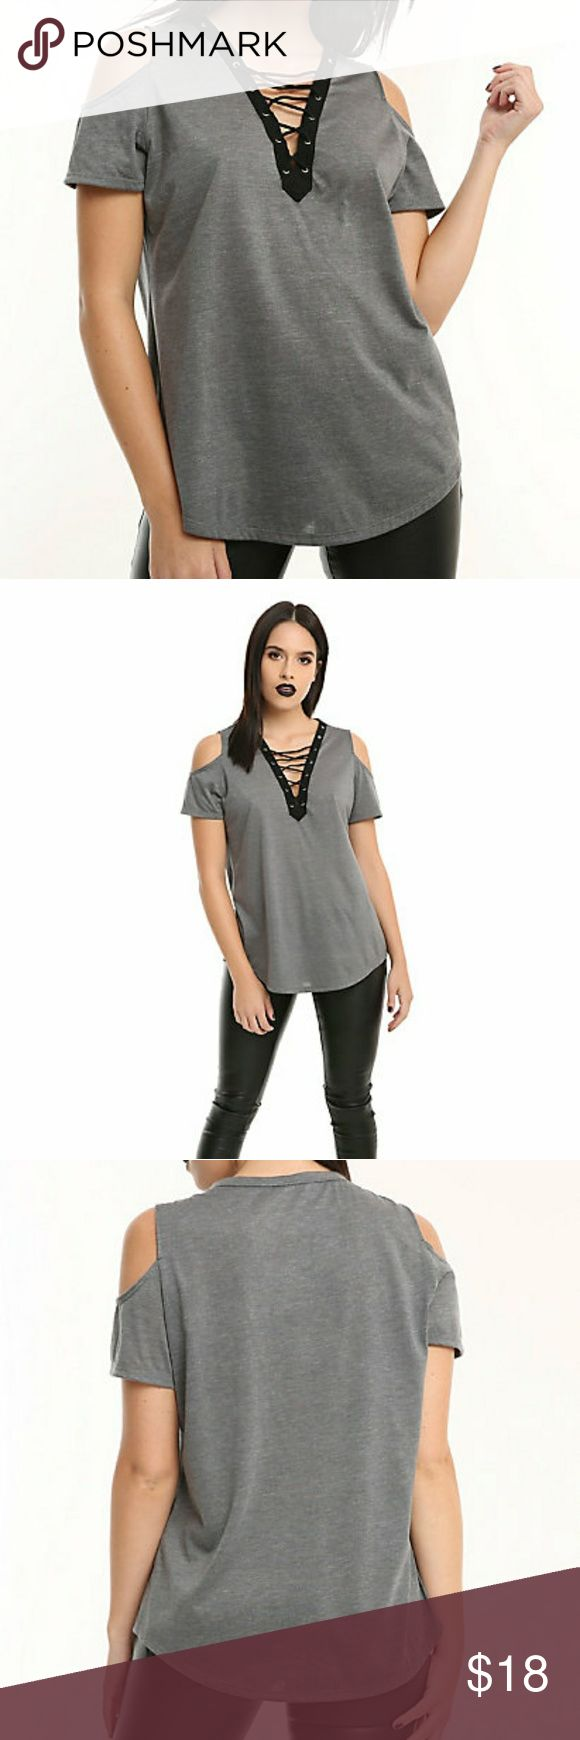 Grey Lace-Up Girls Cold Shoulder Top Show some skin! And by skin we mean your shoulders. This grey top features a cold shoulder design, black trim neckline with silver tone grommets and lace-up detailing.      60% cotton; 40% polyester     Wash cold; dry flat     Imported Hot Topic Tops